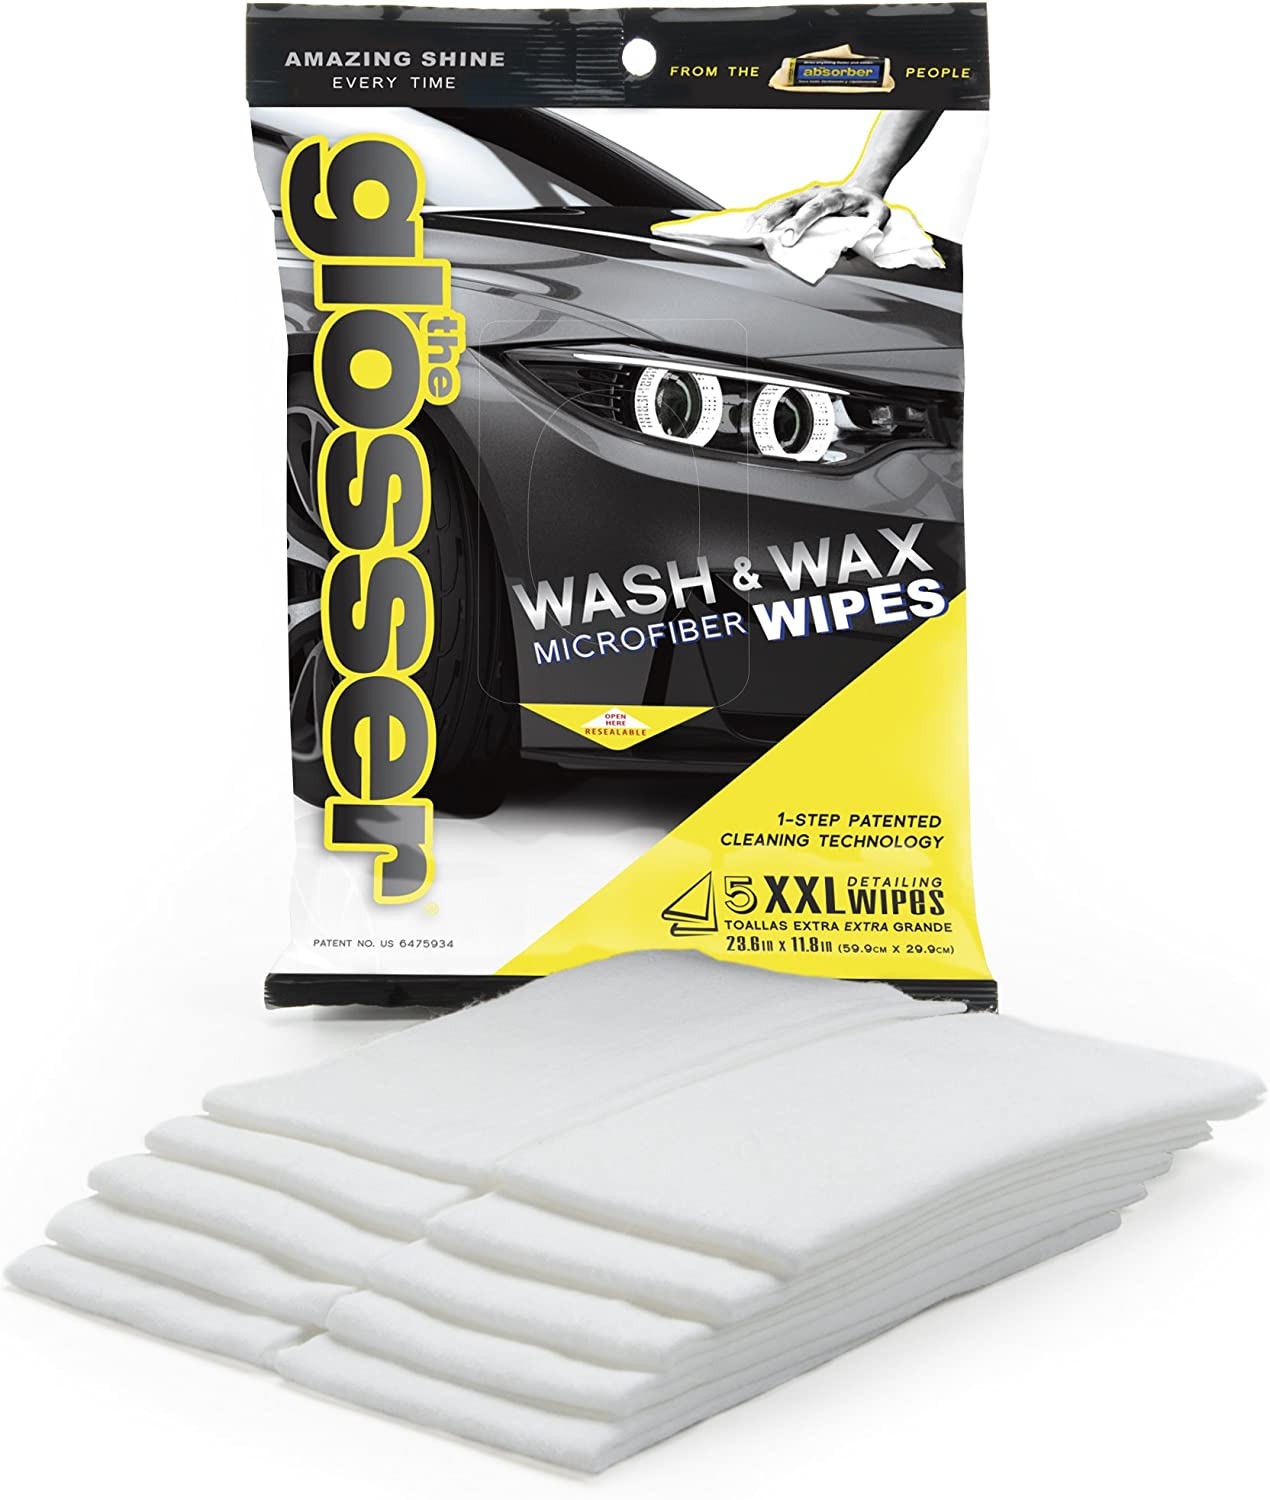 Clean Tools 99006M The Glosser Microfiber Detailing Wipes, 5-Pack: Automotive